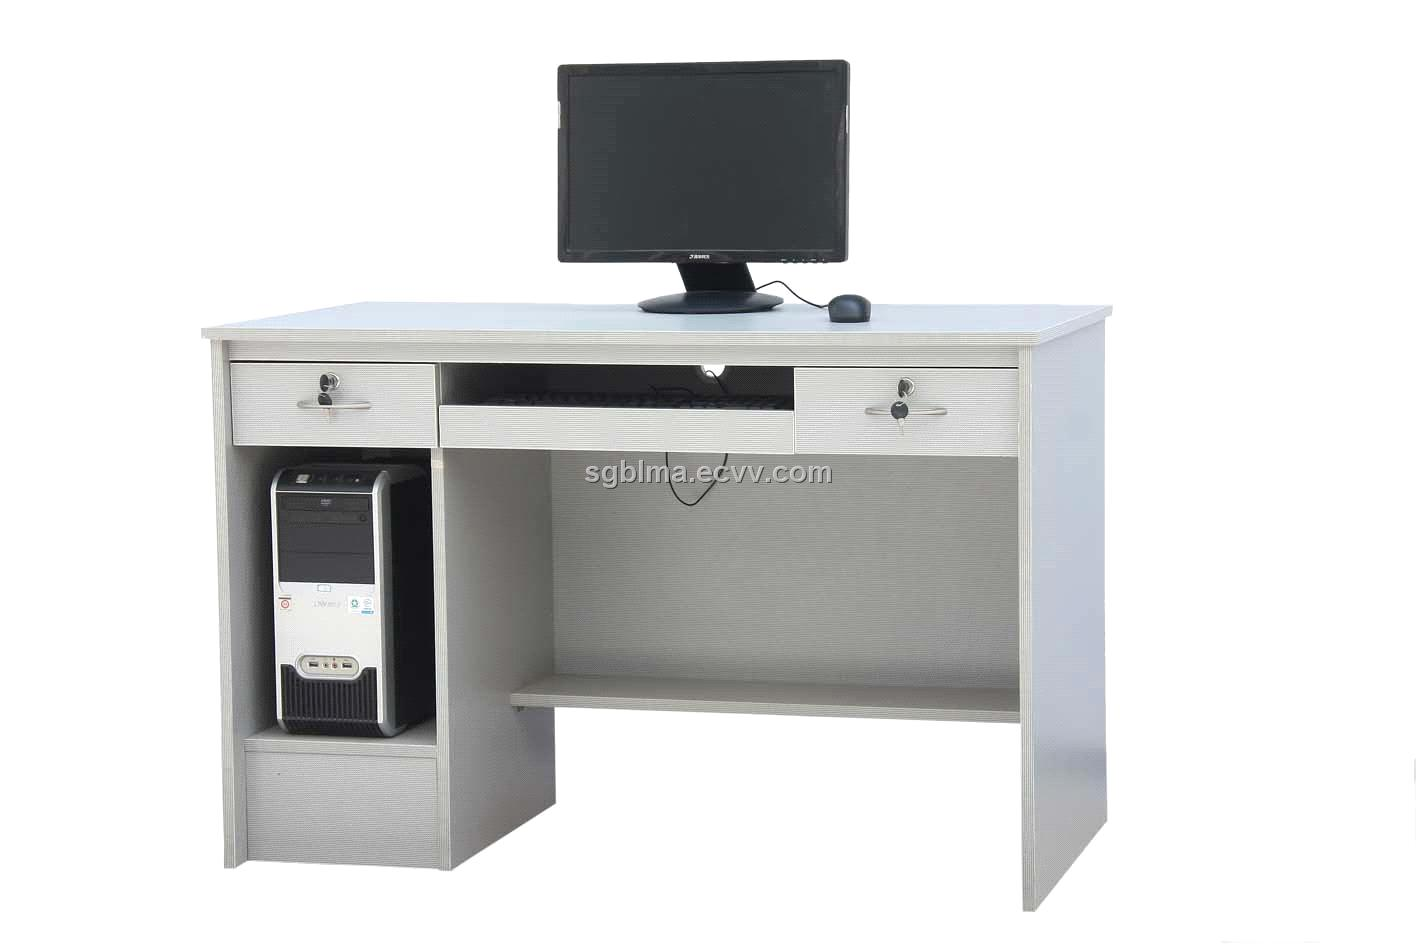 MDF Desk from manufacturers, factories, wholesalers, distributors ...